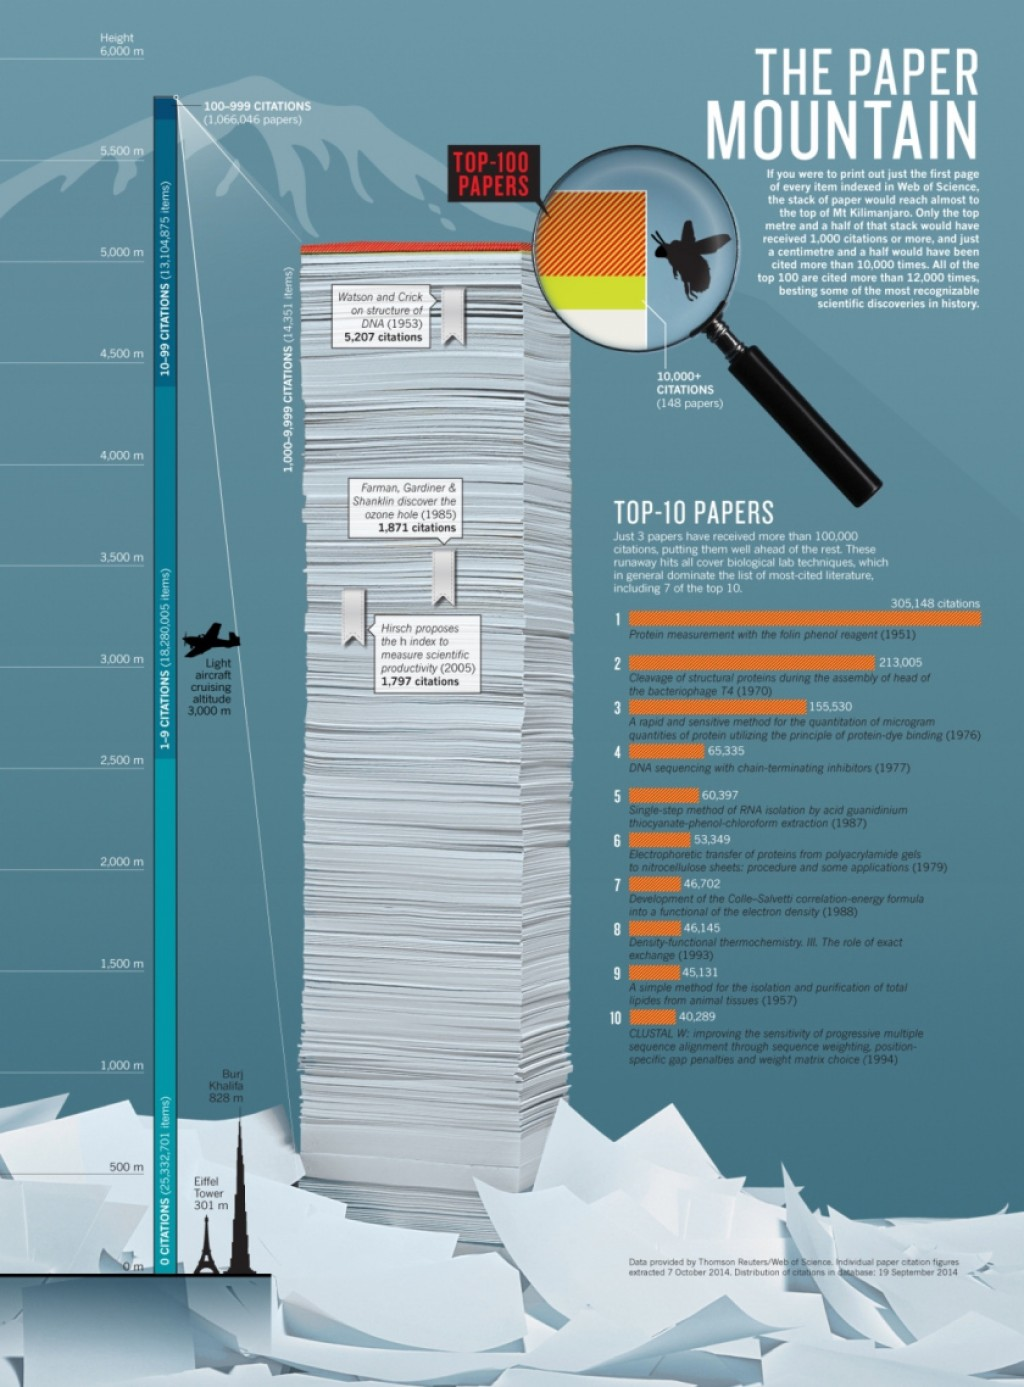 017 Cited Research Paper Nature Top 100 Papers Infographicv2 30 Archaicawful Do Works Page For A About The Little Rock Nine Example Large